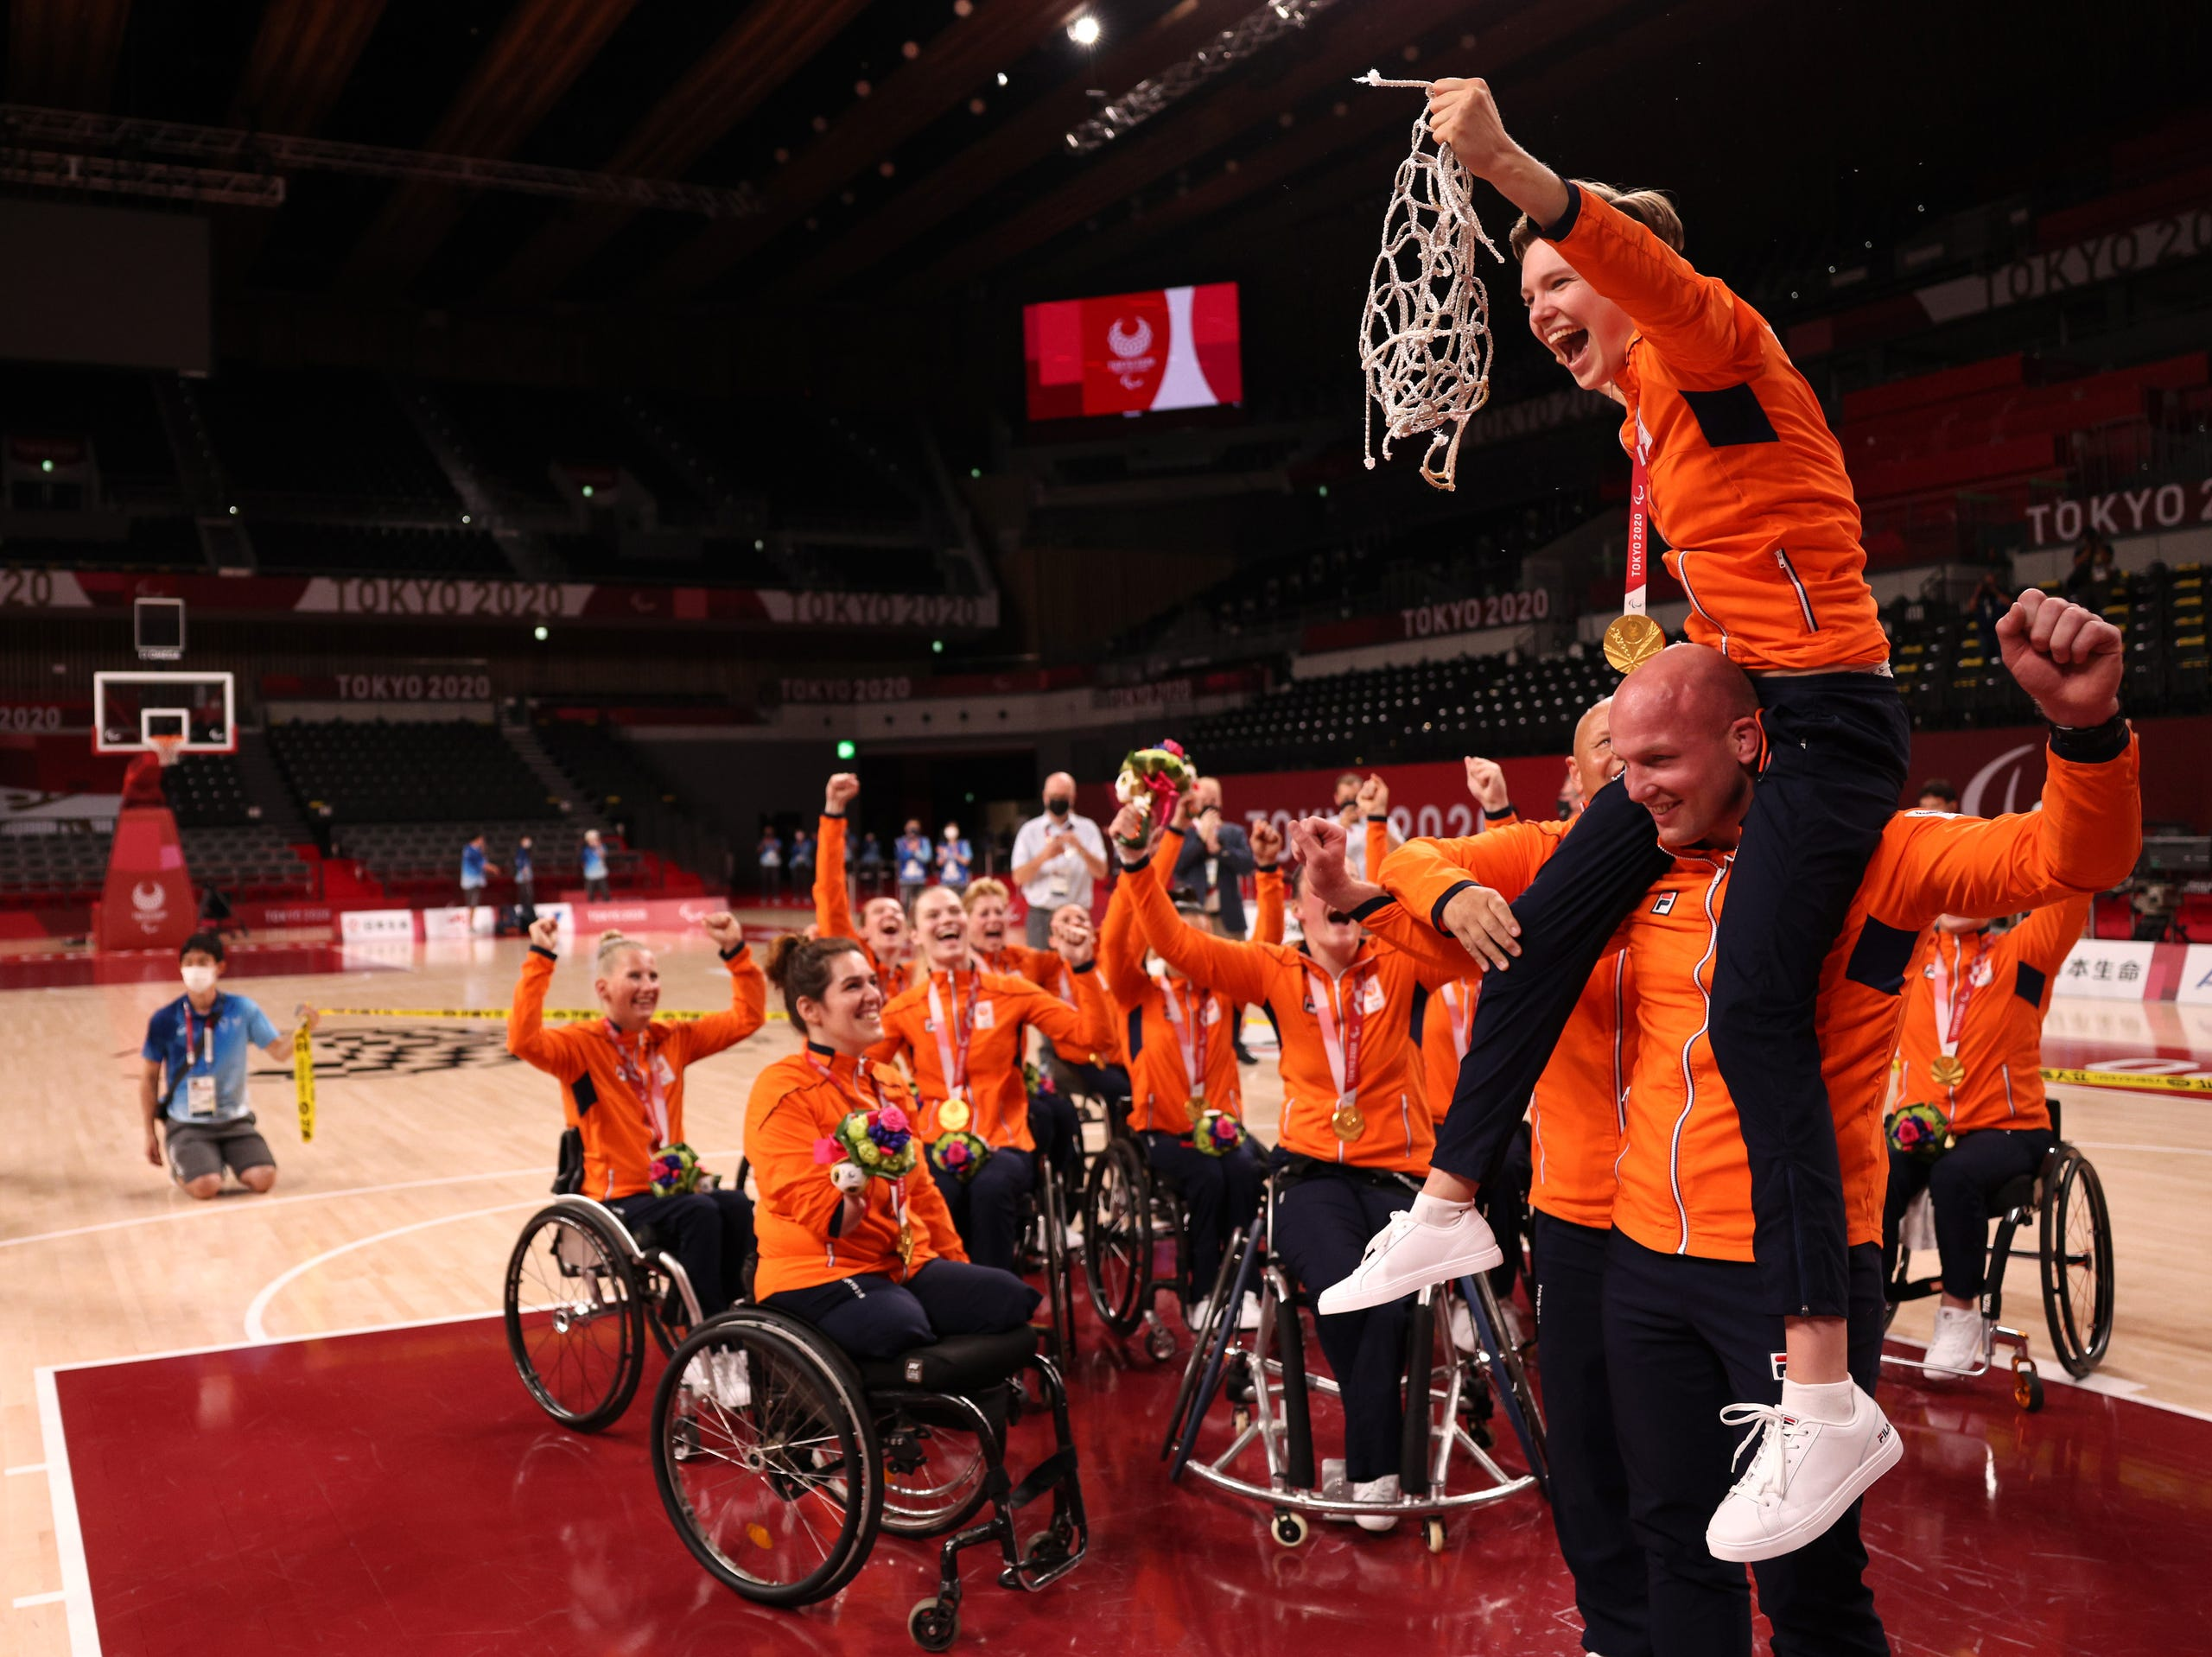 Sept. 4: Gold medalist Bo Kramer #9 of Team Netherlands cuts down the net to celebrate with her team during the women's Wheelchair Basketball medal ceremony on day 11 of the Tokyo 2020 Paralympic Games at Ariake Arena.